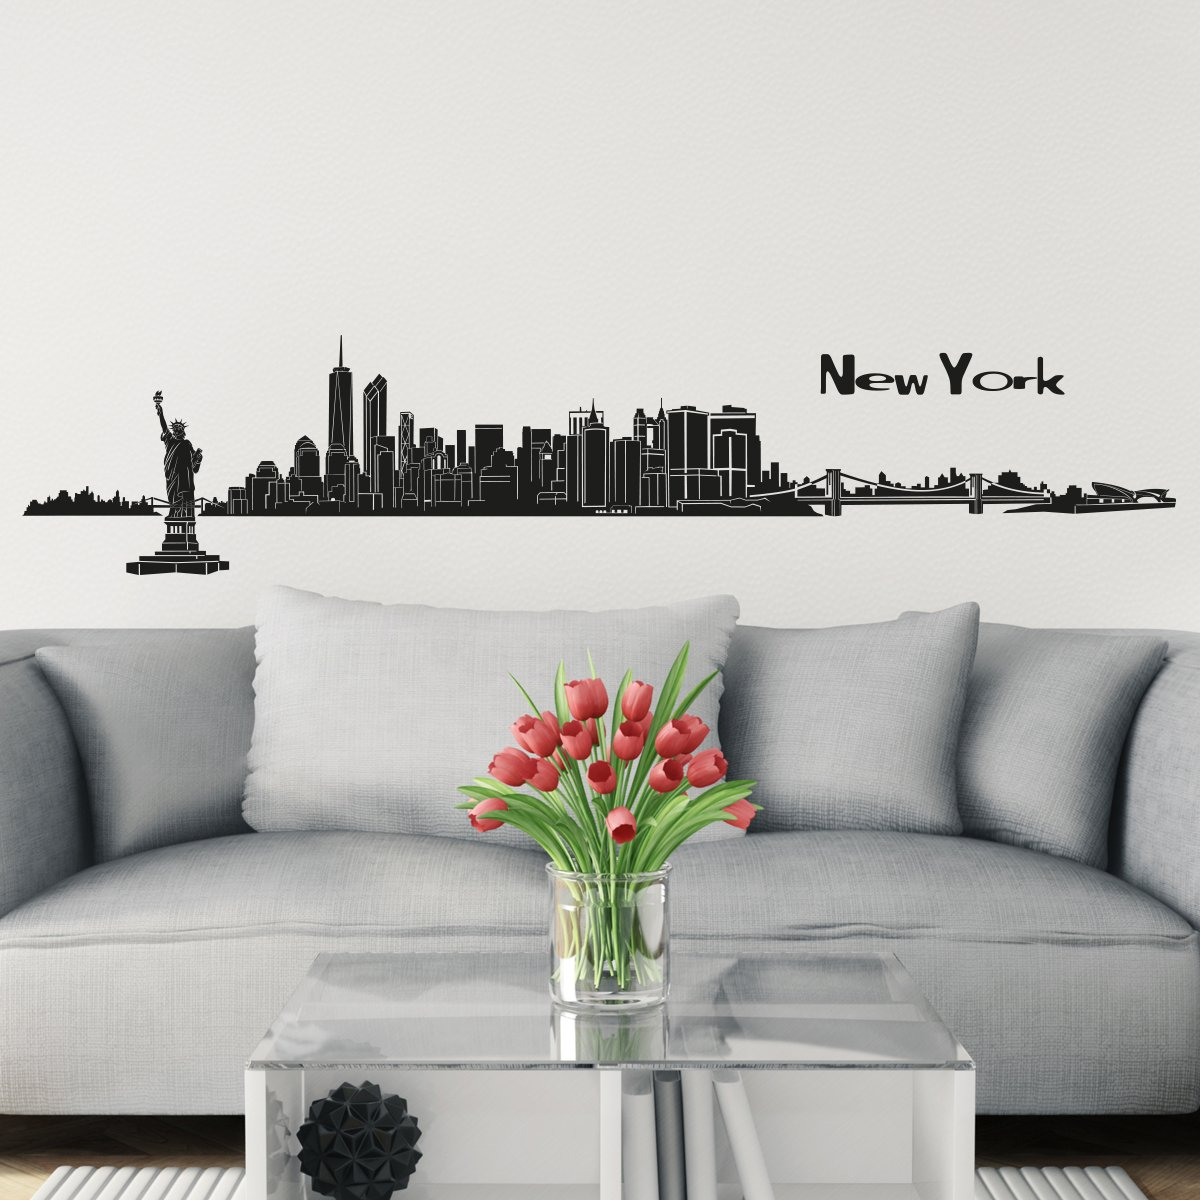 Wandkings Skyline wall sticker wall decal - 48.8 x 7.9 inch in black - Your city selectable - NEW YORK